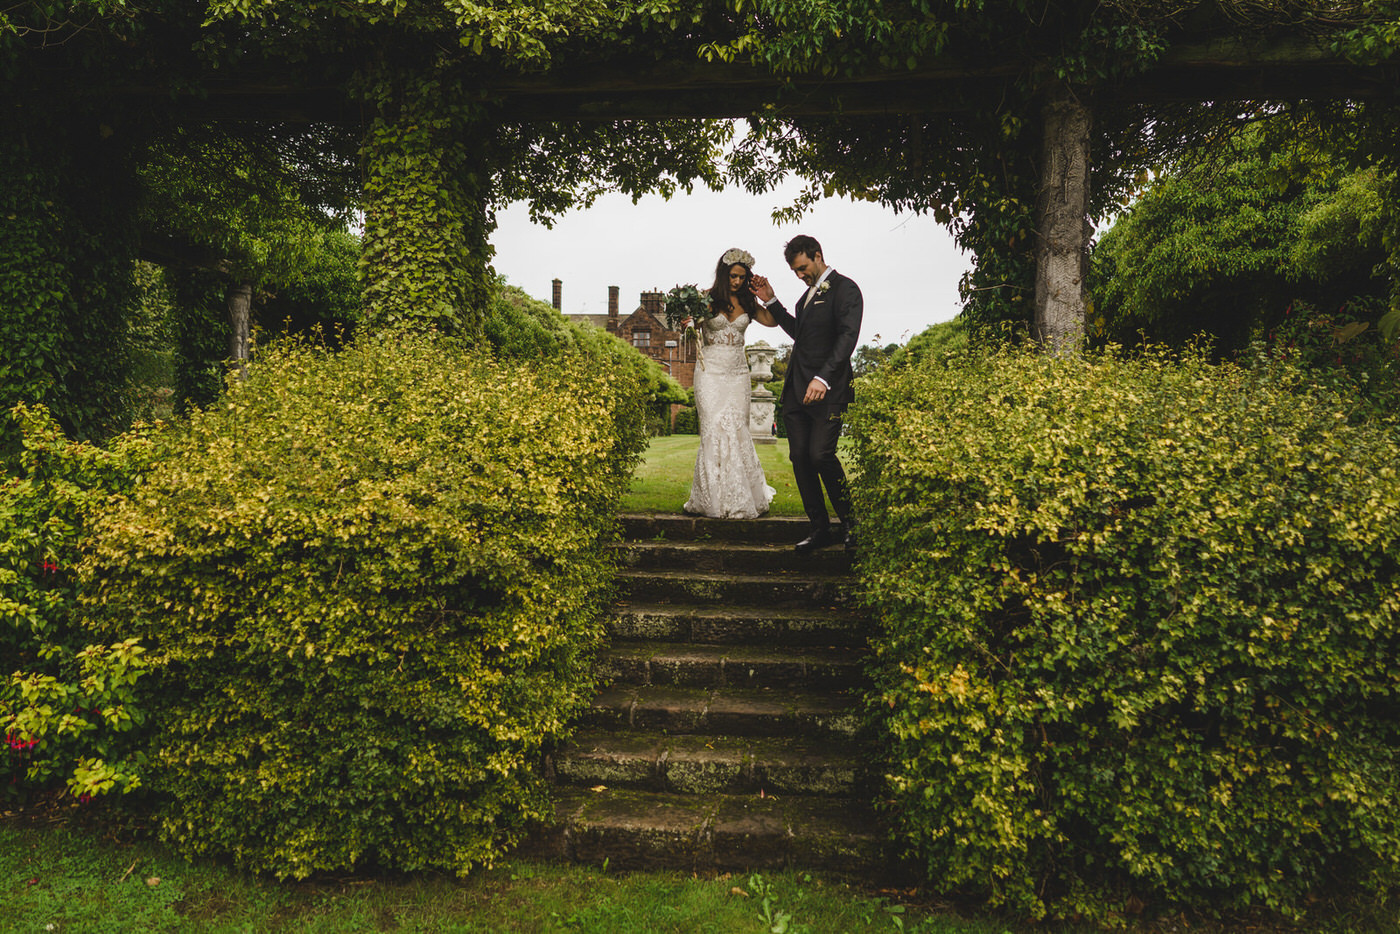 the groom helps his bride down some steps in the gardens of Thornton Manor